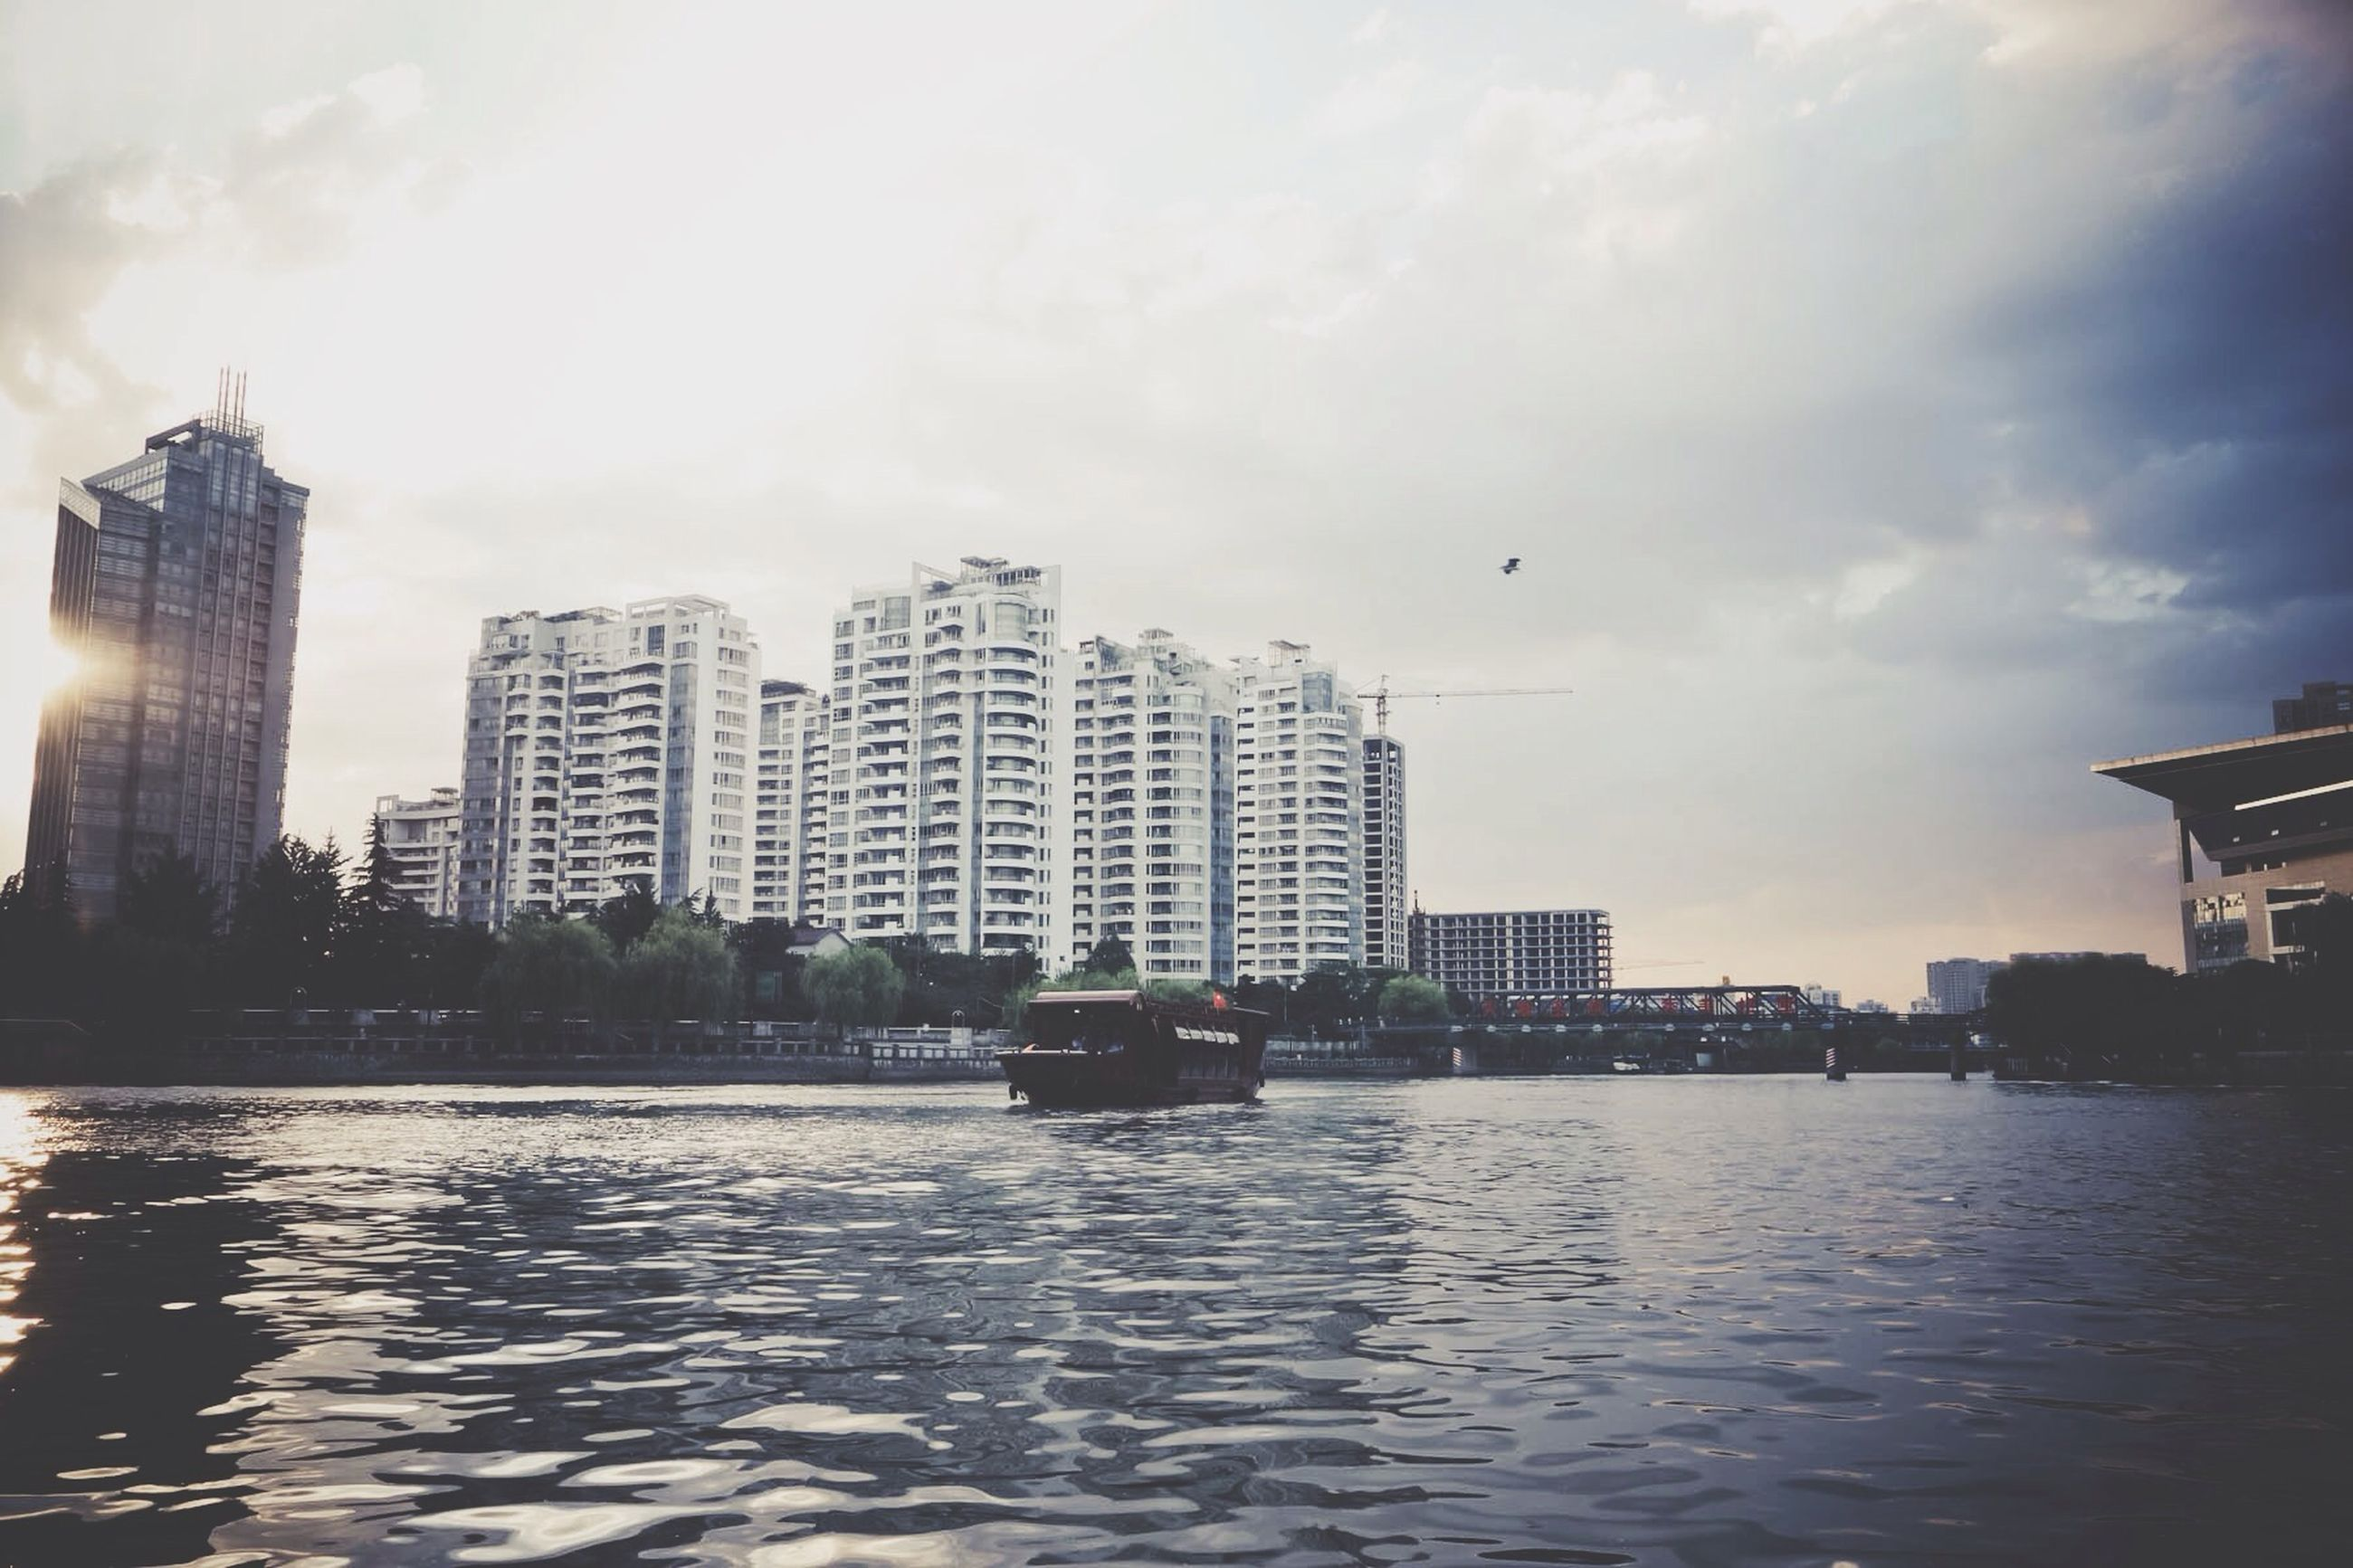 building exterior, architecture, built structure, water, waterfront, sky, city, cloud - sky, river, reflection, skyscraper, building, rippled, cloud, cityscape, cloudy, urban skyline, outdoors, no people, residential building